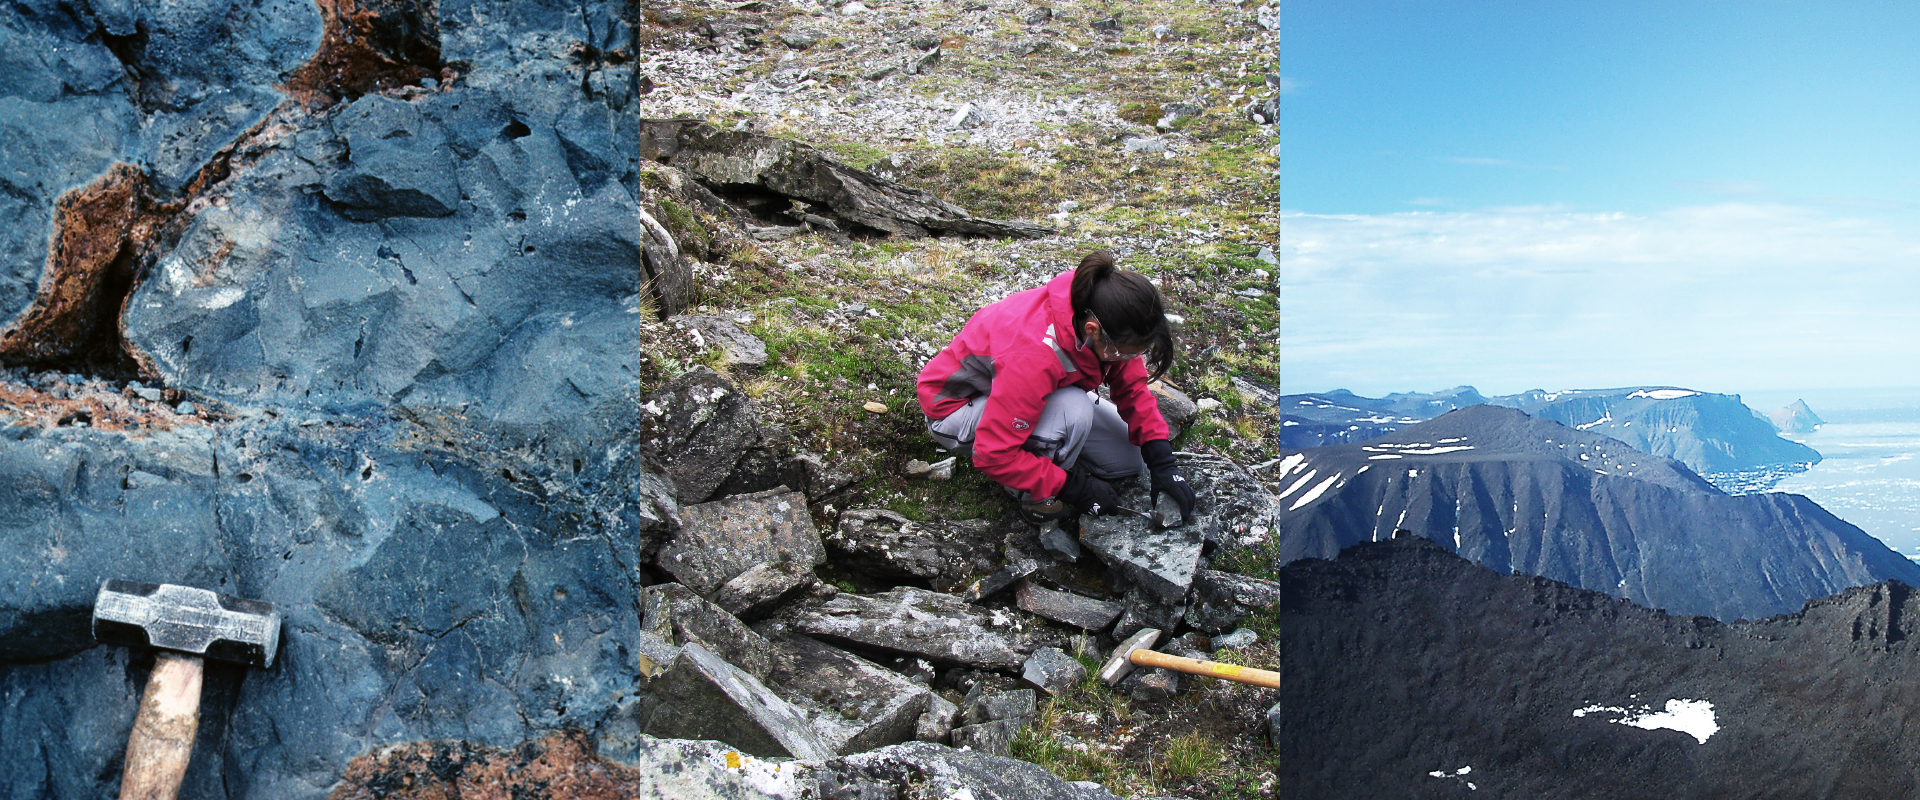 <p>The 60 million-year-old flood basalts of Baffin Bay, Greenland, sampled by the geochemist Hanika Rizo (center) and colleagues, contain isotope traces that originated more than 4.5 billion years ago.</p>